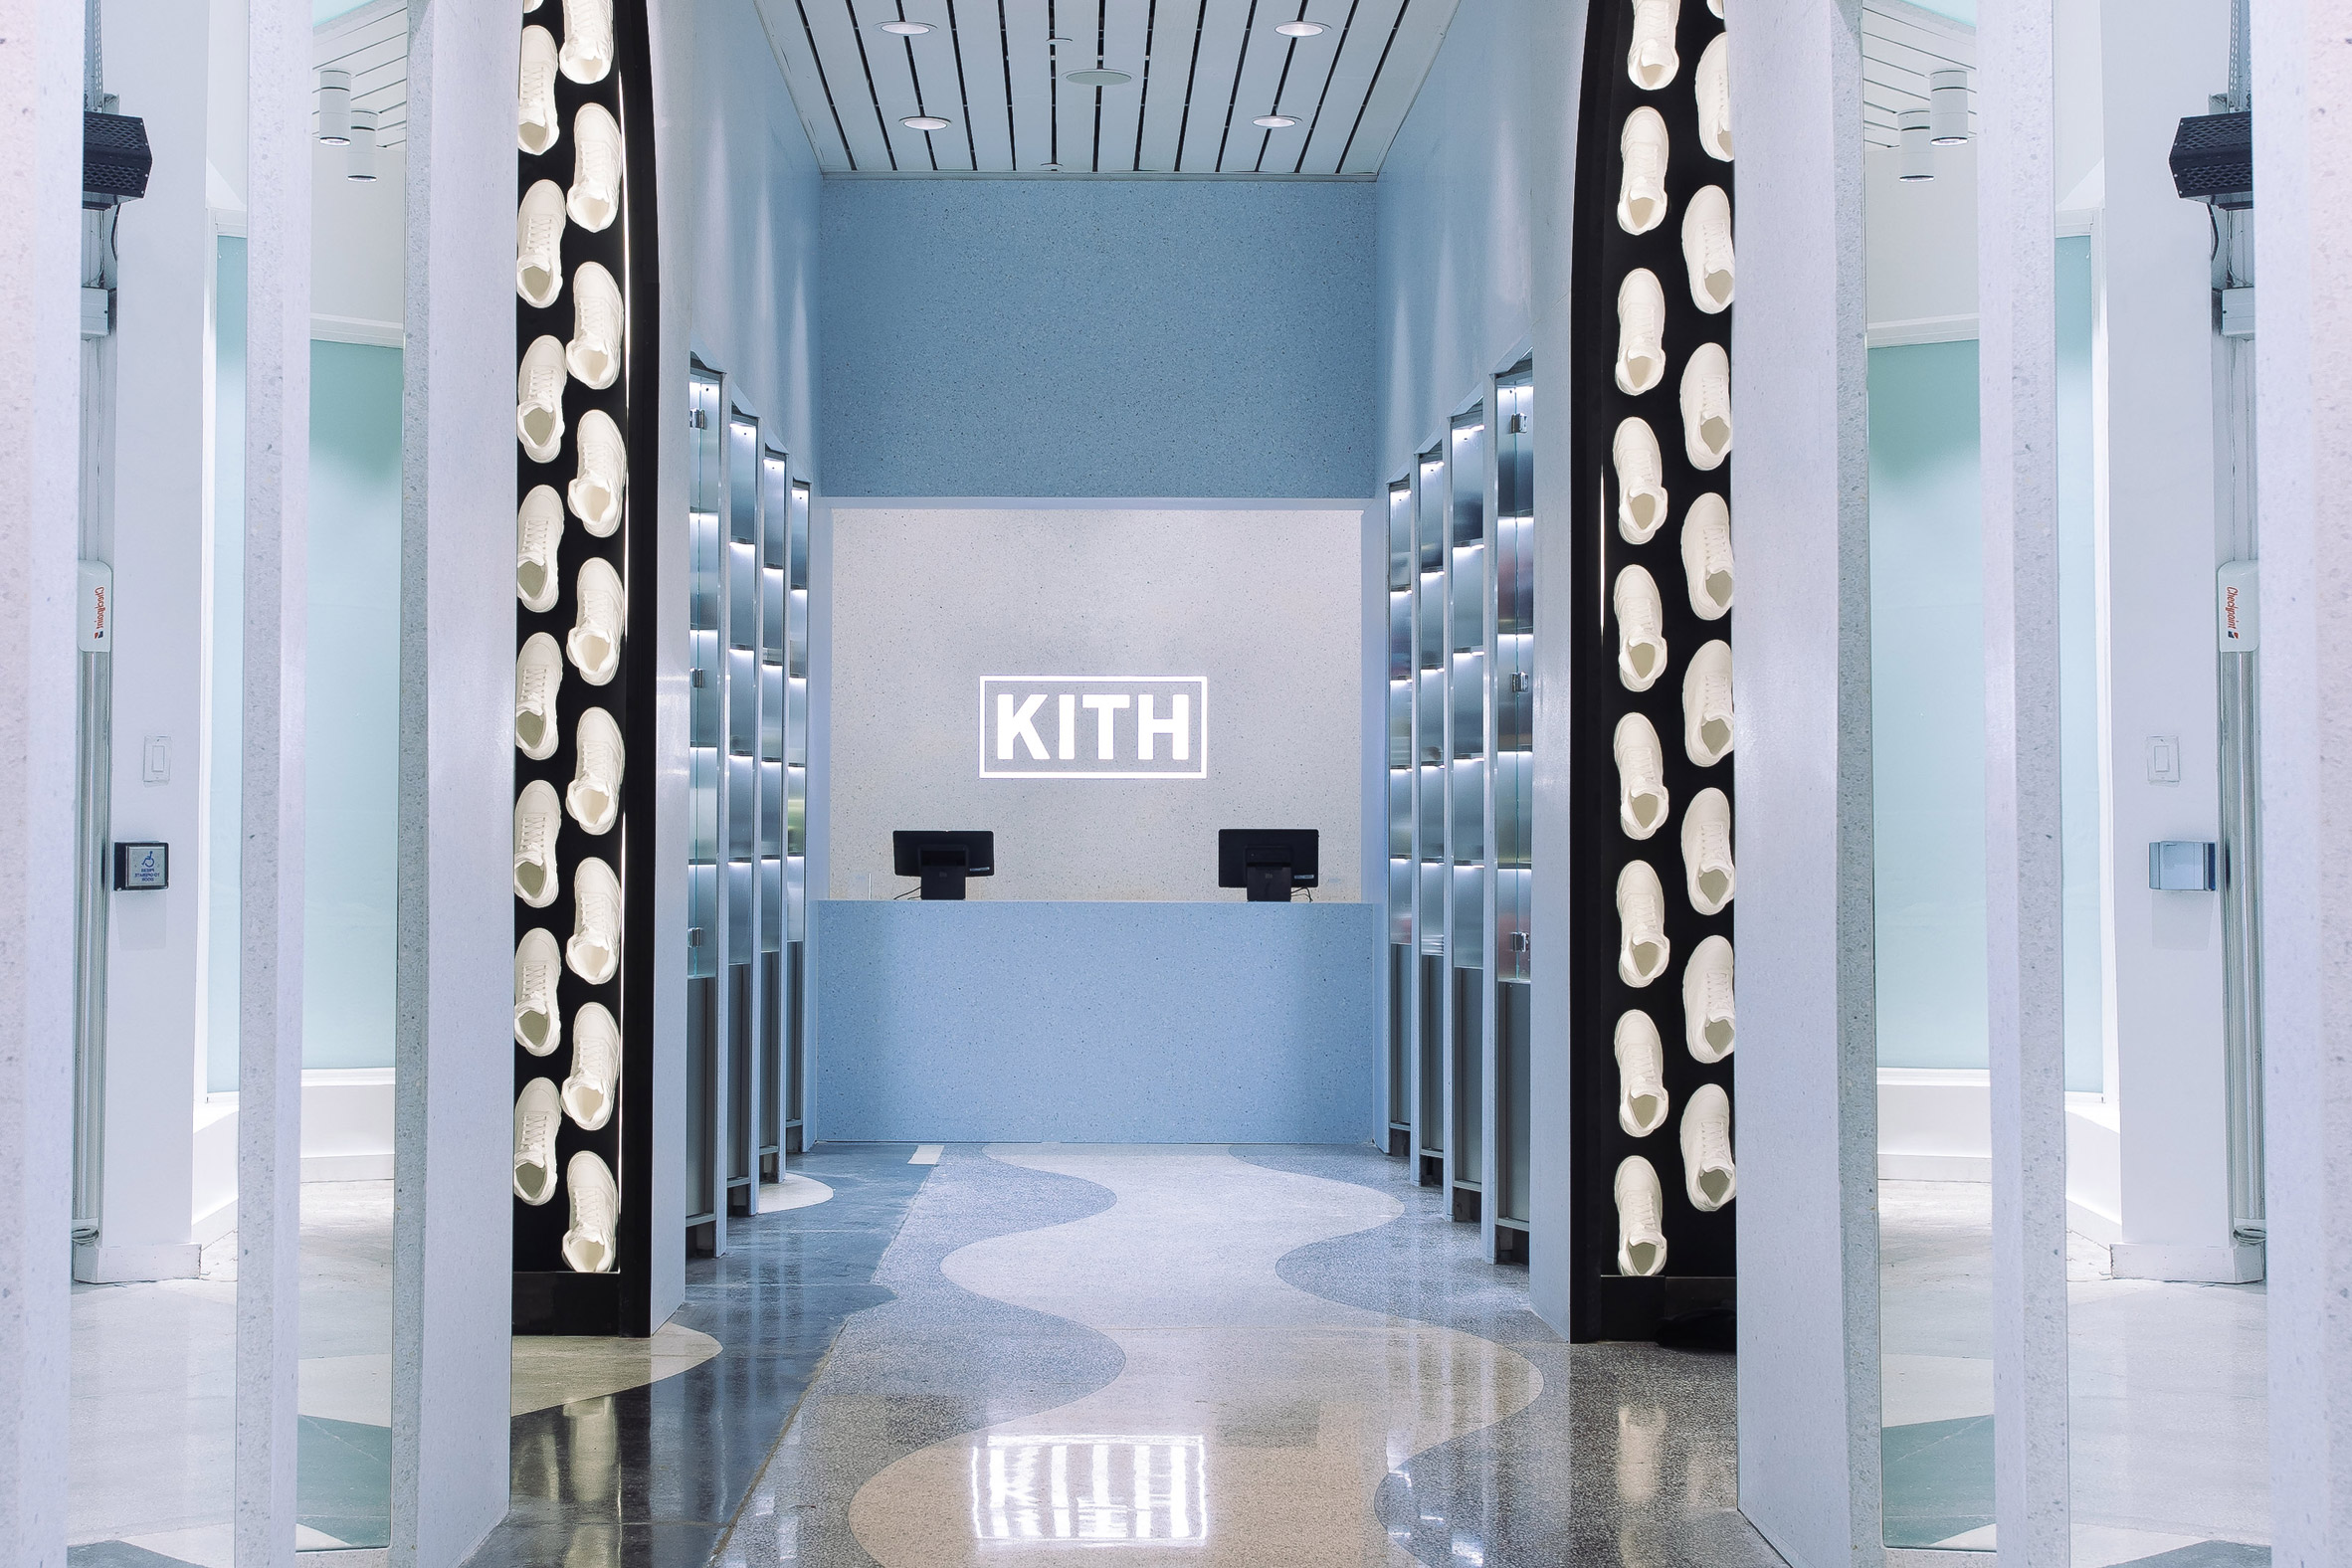 Snarkitecture designs gallery-like interior for Kith's Miami flagship store